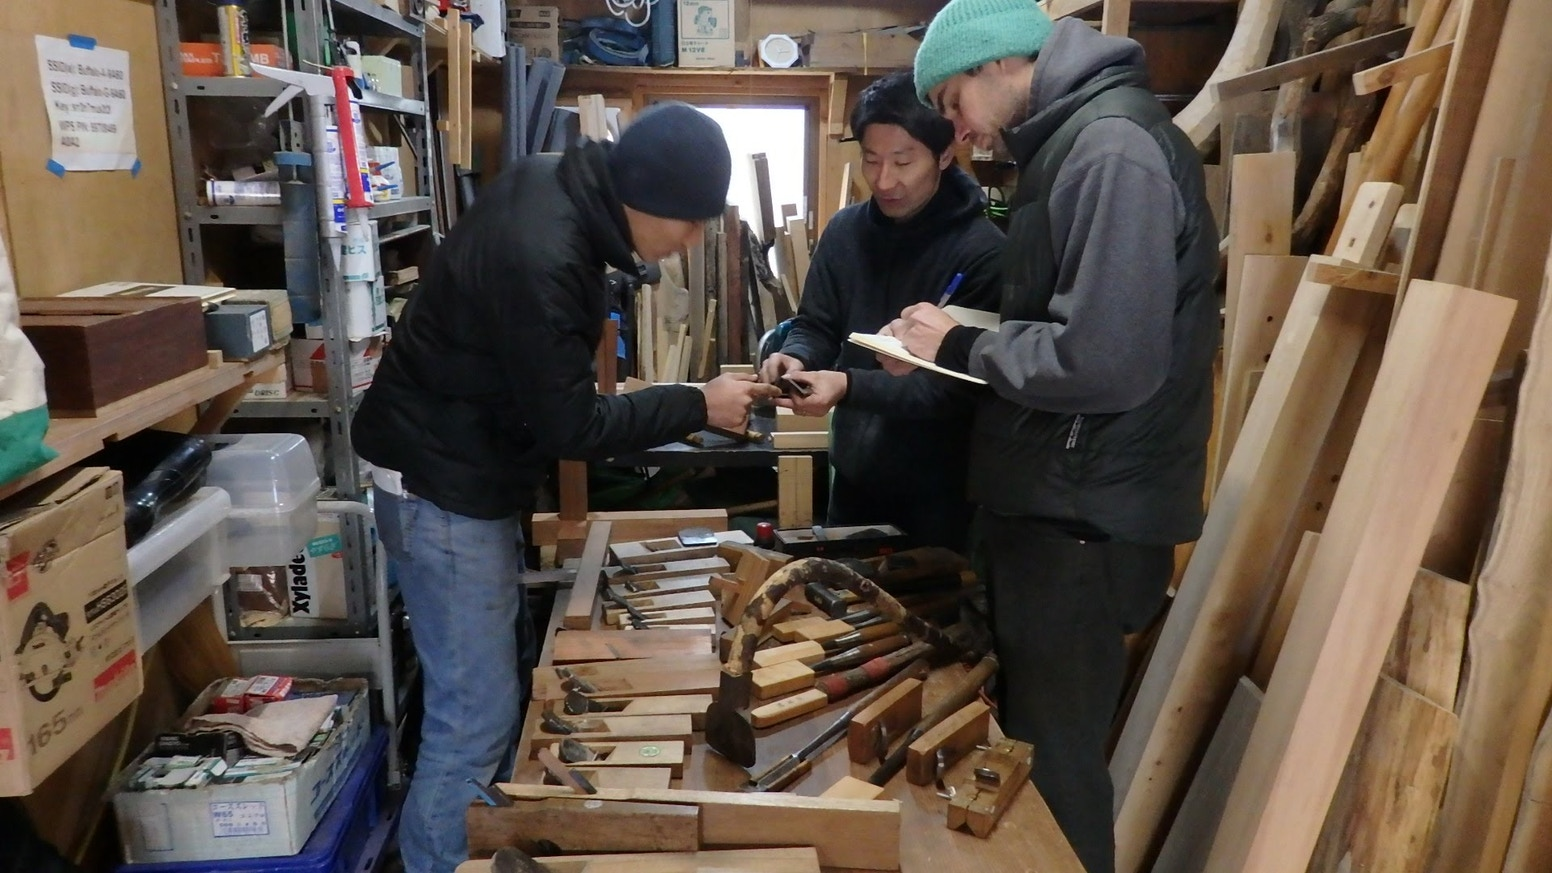 study woodworking in japan!takami kawai 河井 尊臣